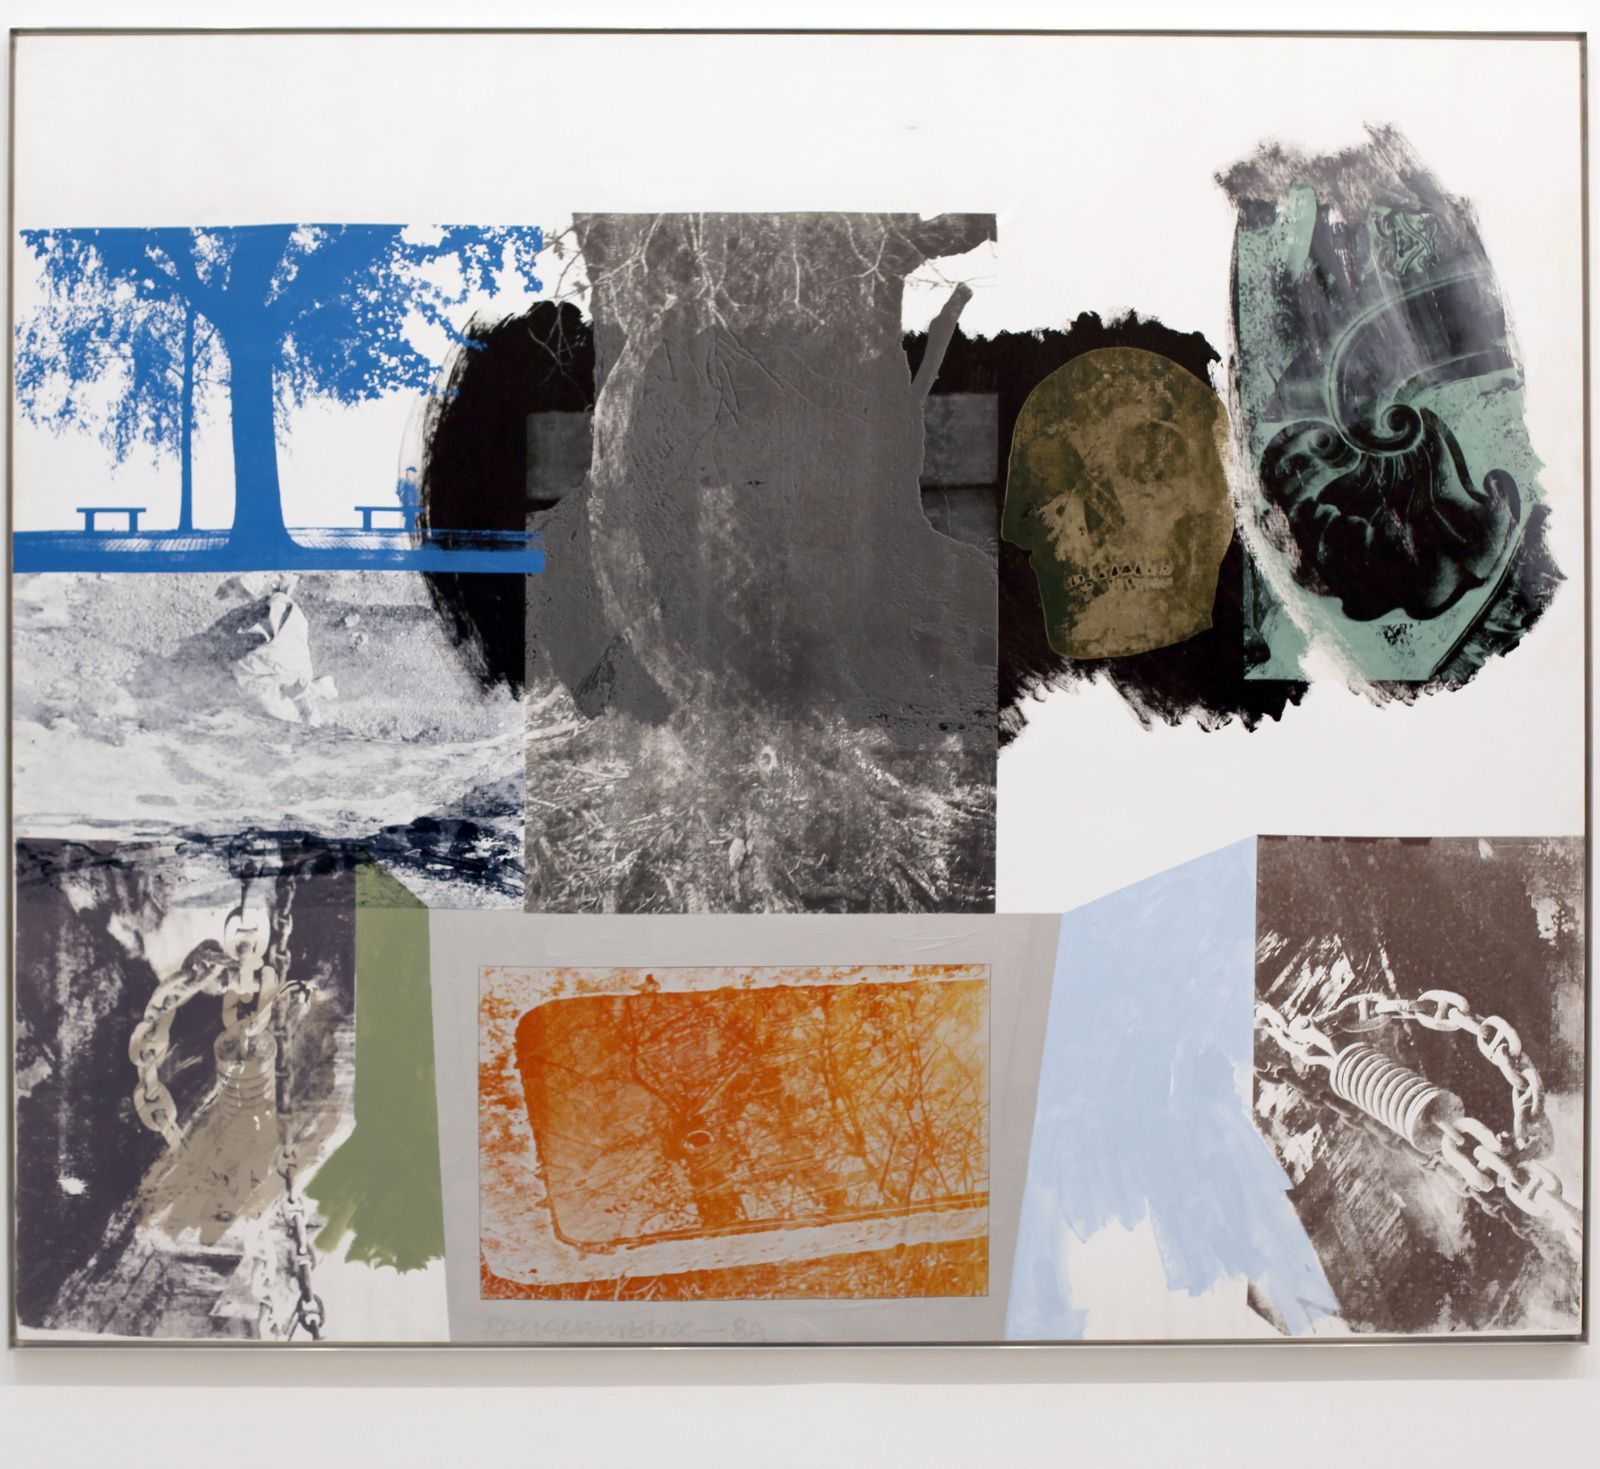 """Untitled (Salvage)"", 1985 de Robert RAUSCHENBERG - Courtesy Galerie Thaddaeus ROPAC © Éric Simon"